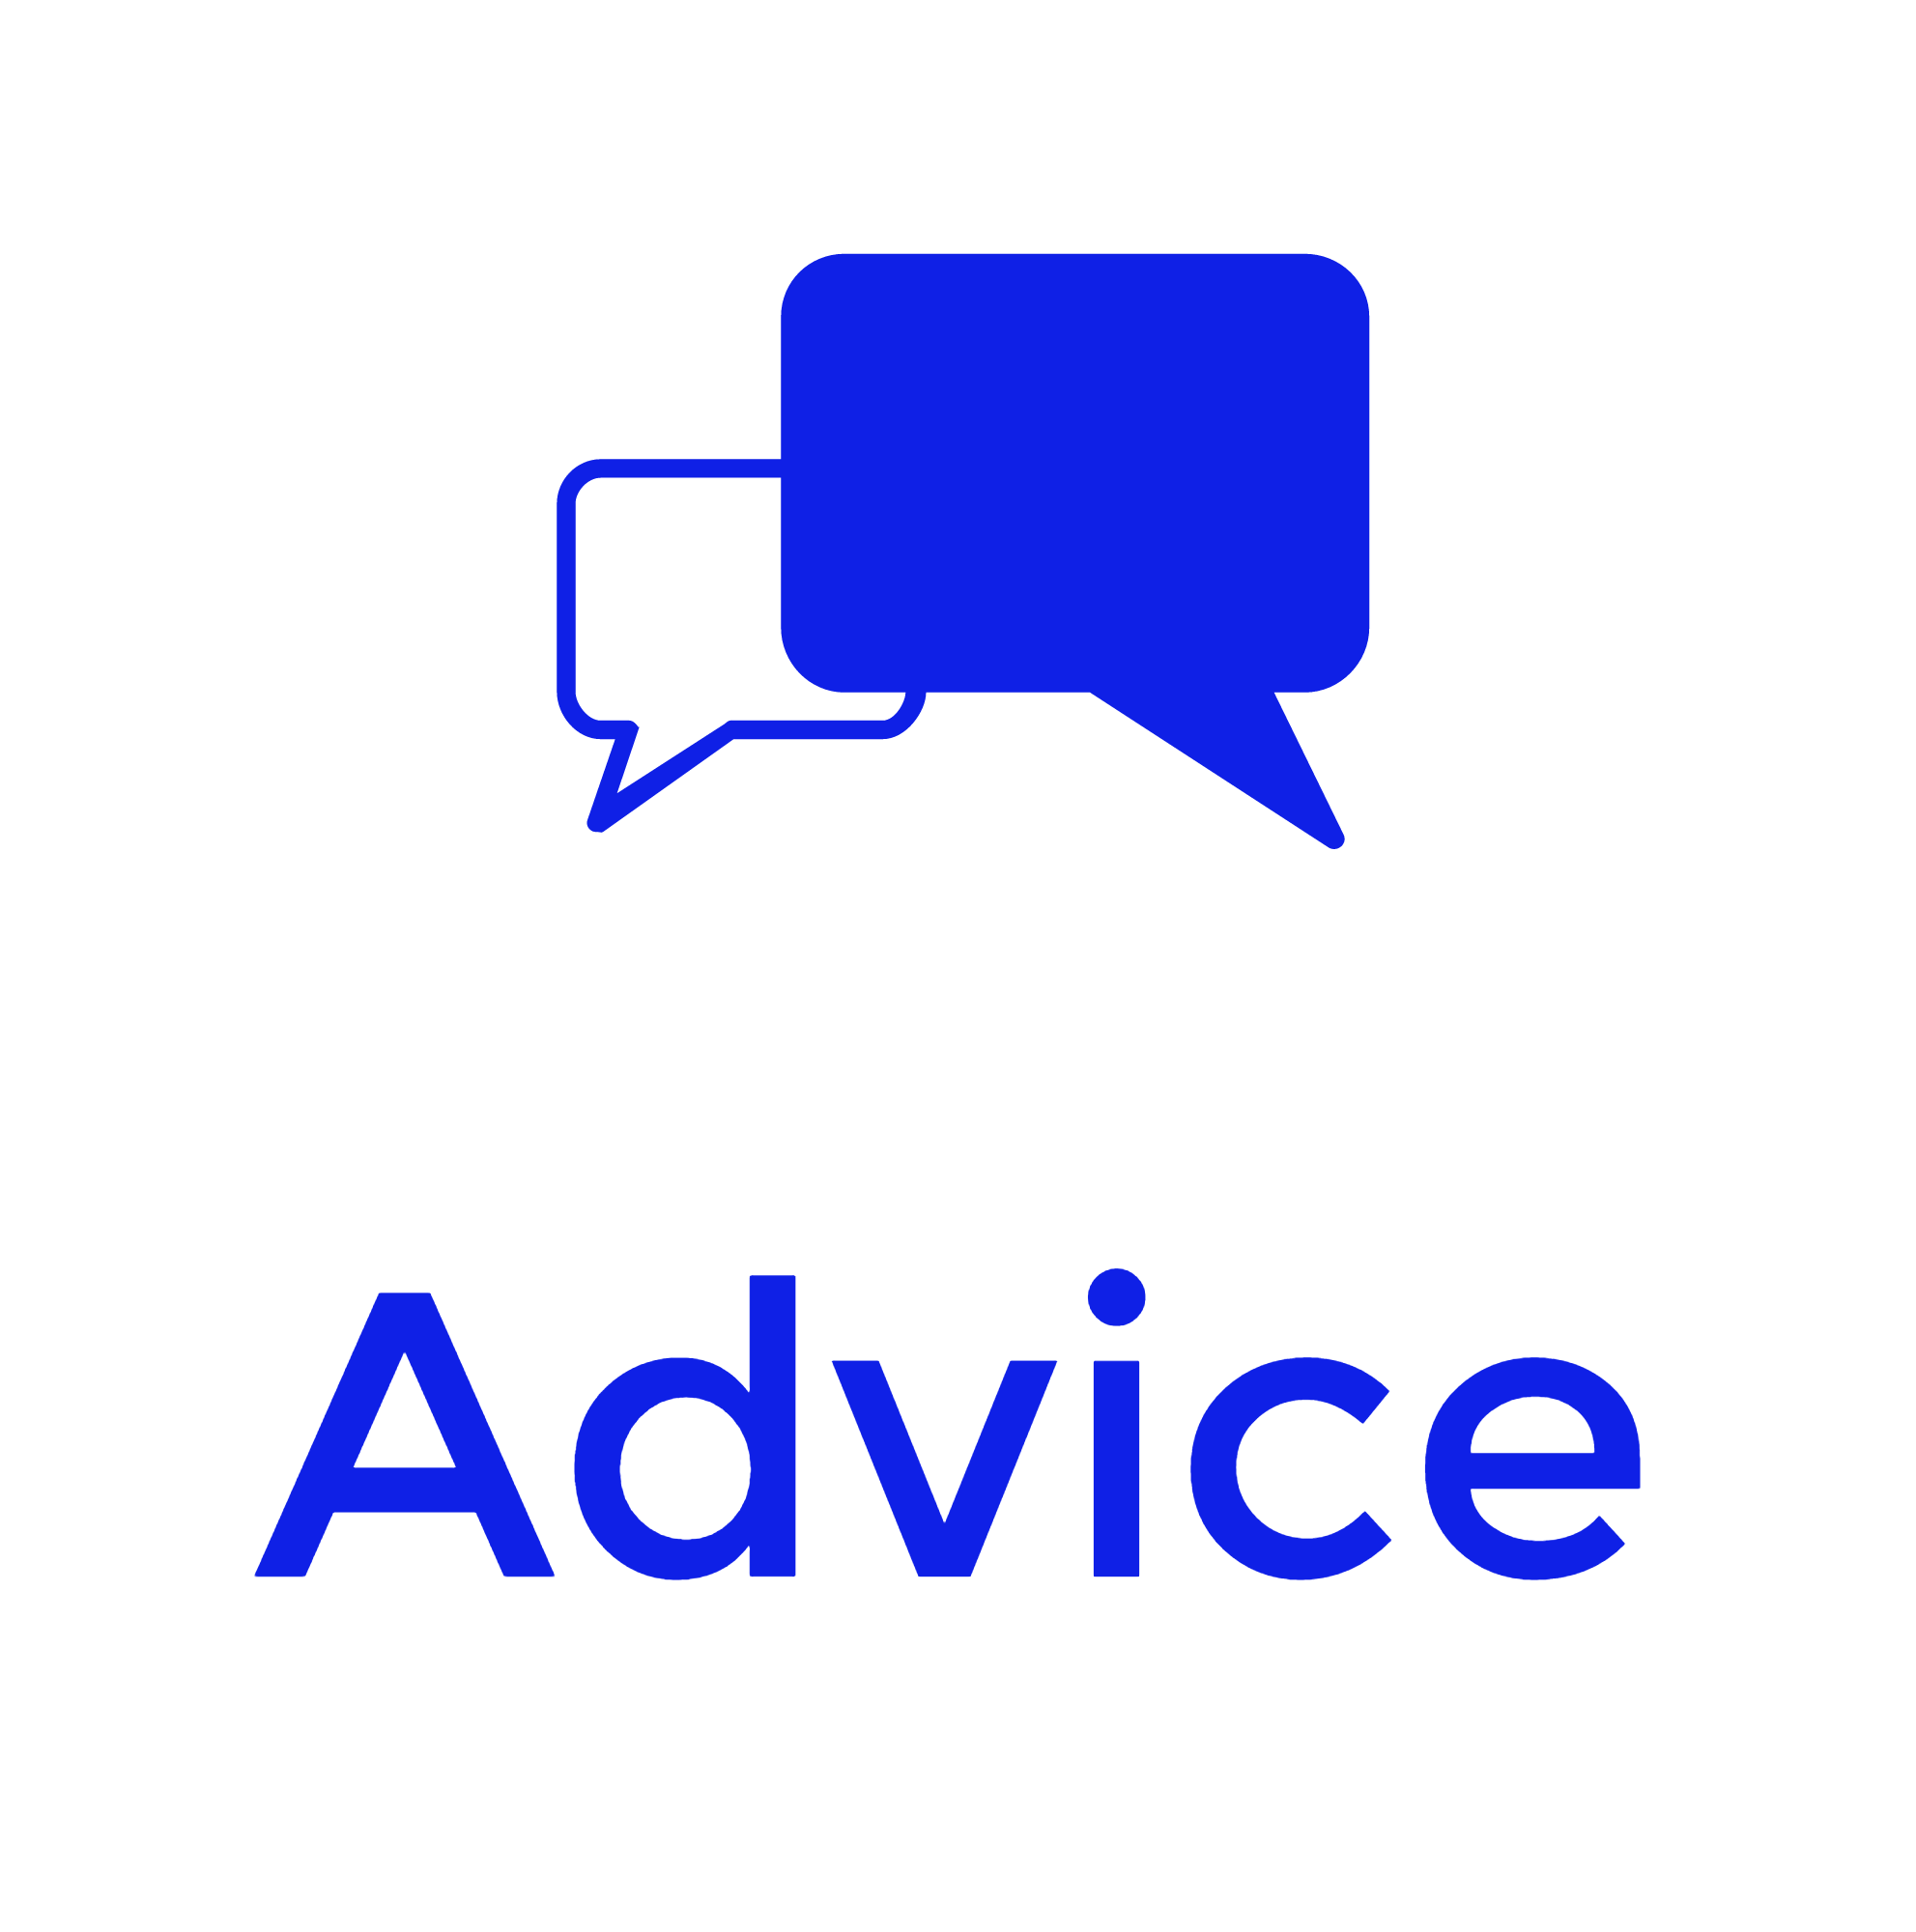 Advice-logo.png